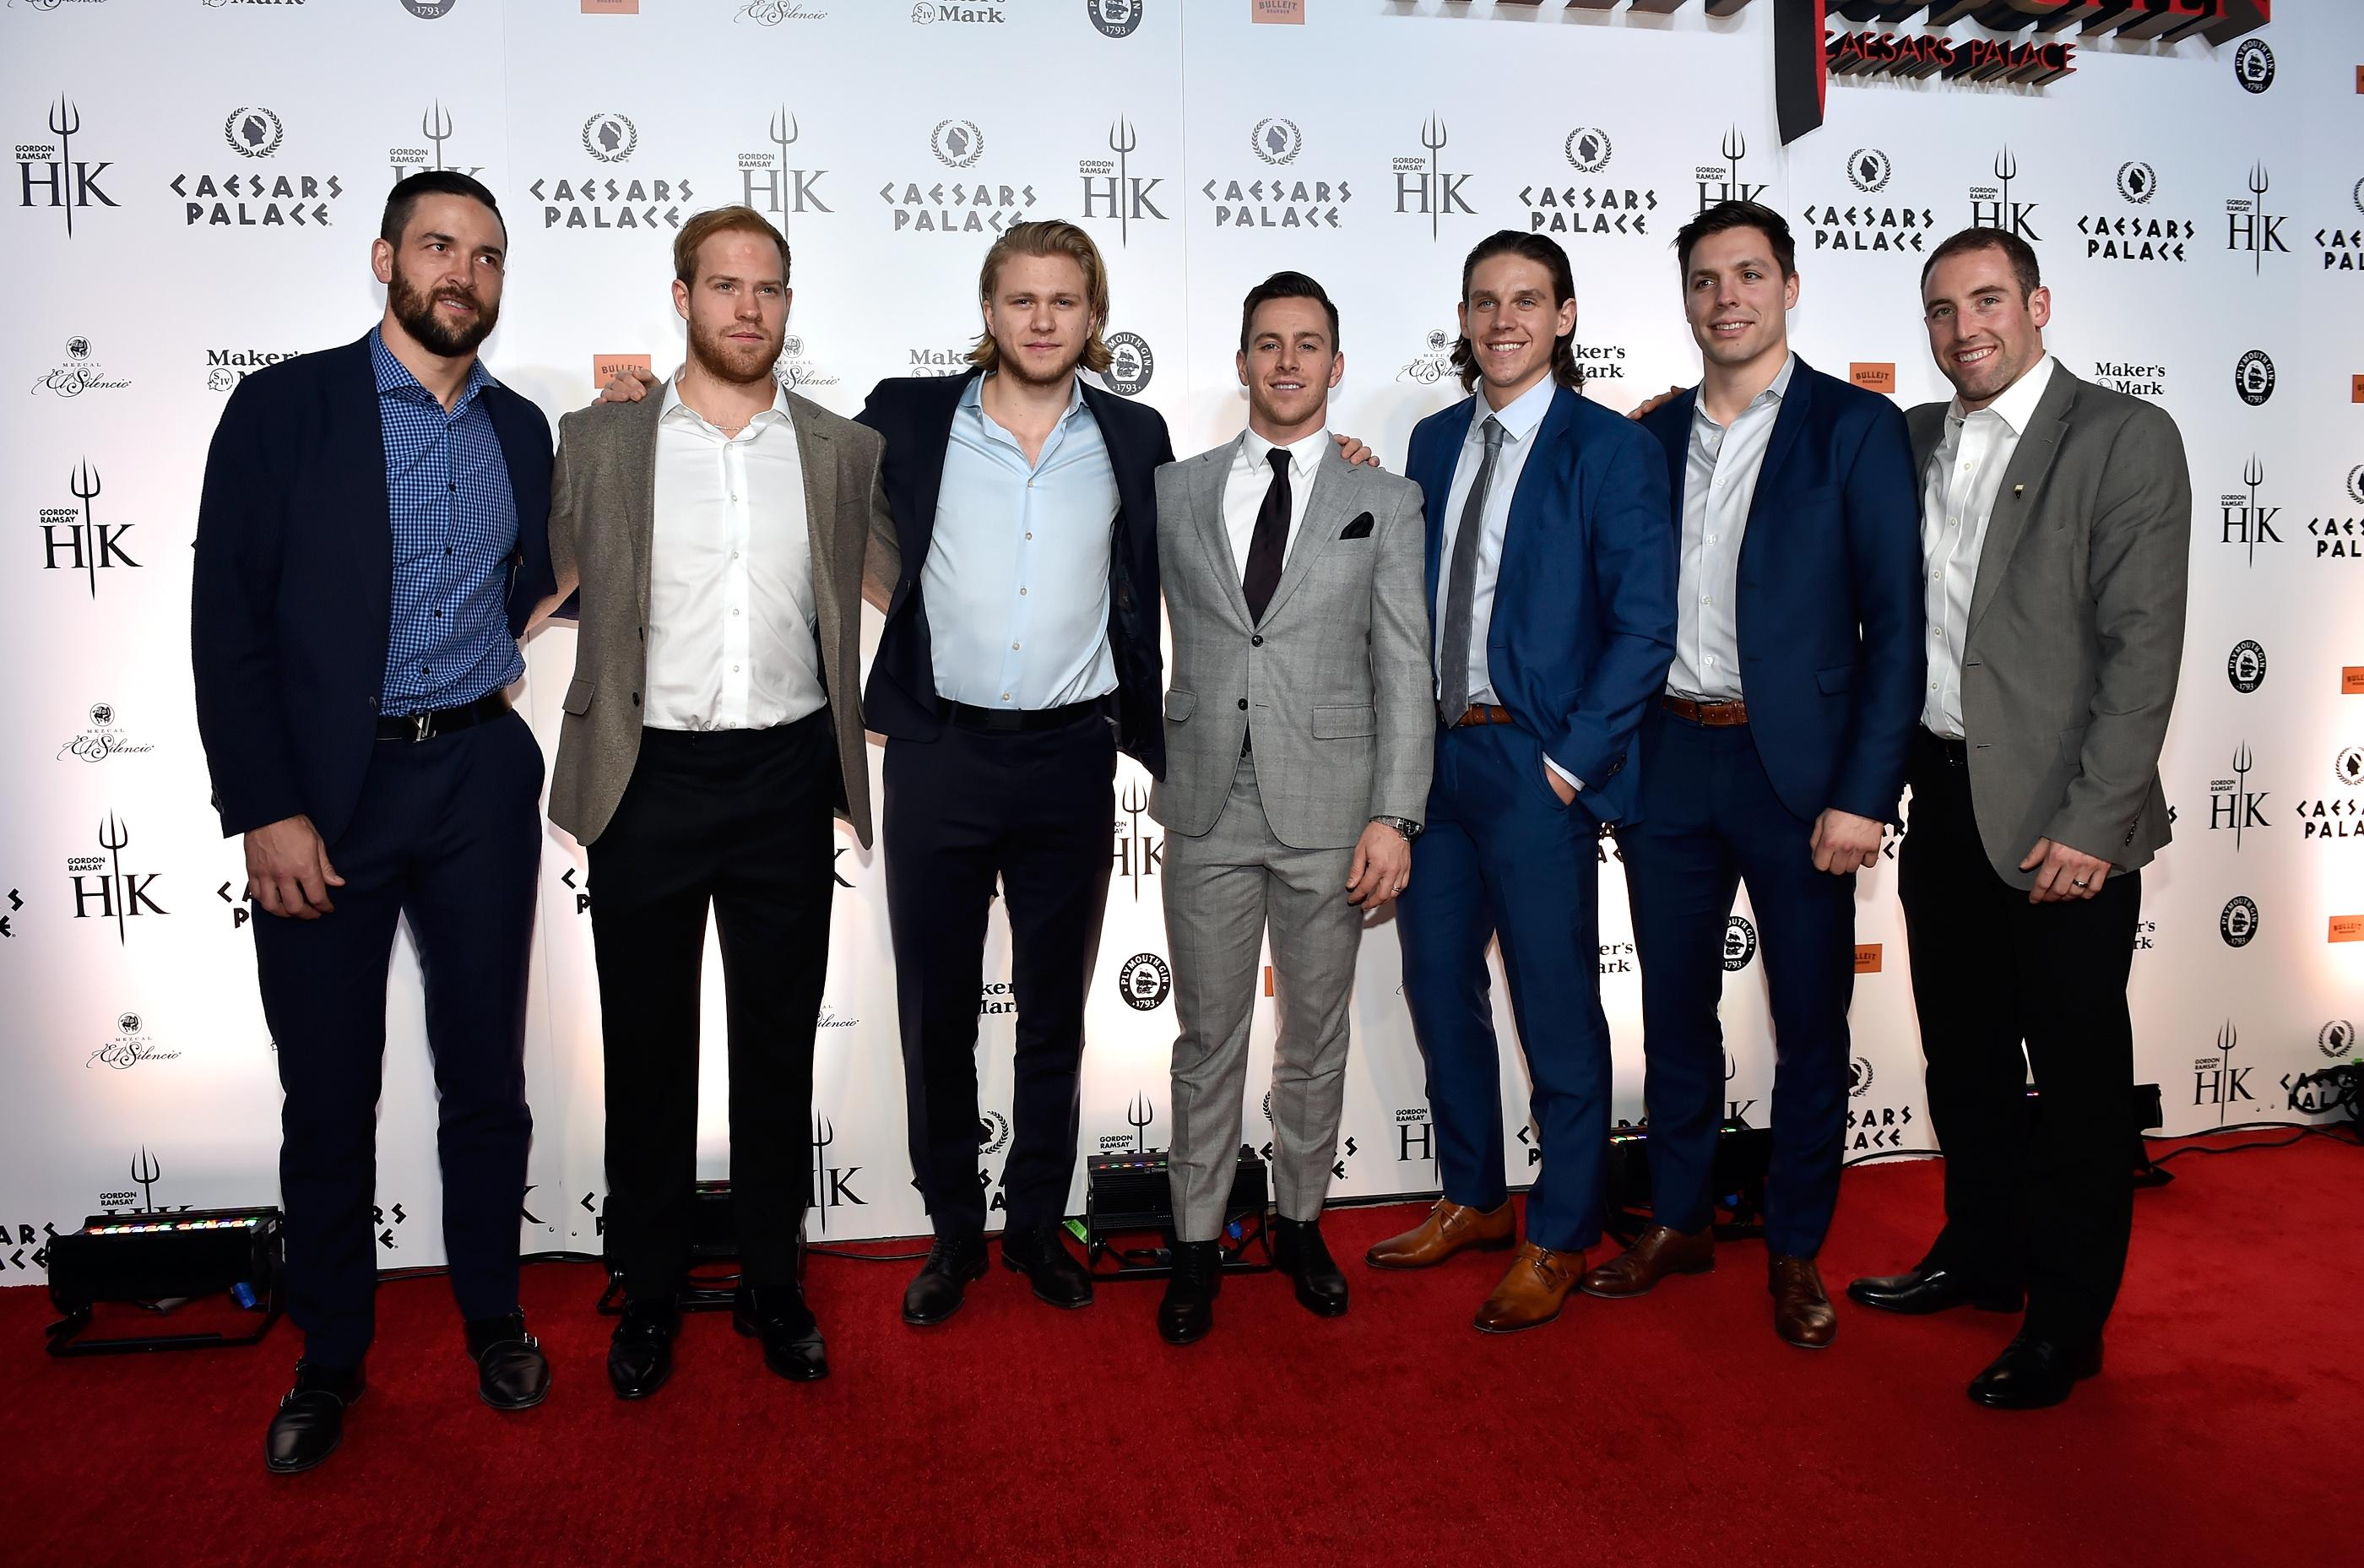 Vegas Golden Knight players from left, Deryk England, Oscar Lindberg, William Karlsson, Jonathan Marchessault, Erik Haula, David Perron and Brand Hunt attend the grand opening of Gordon Ramsay Hell's Kitchen at Caesars Palace Friday, Jan. 26, 2018, in Las Vegas. CREDIT: David Becker/Las Vegas News Bureau